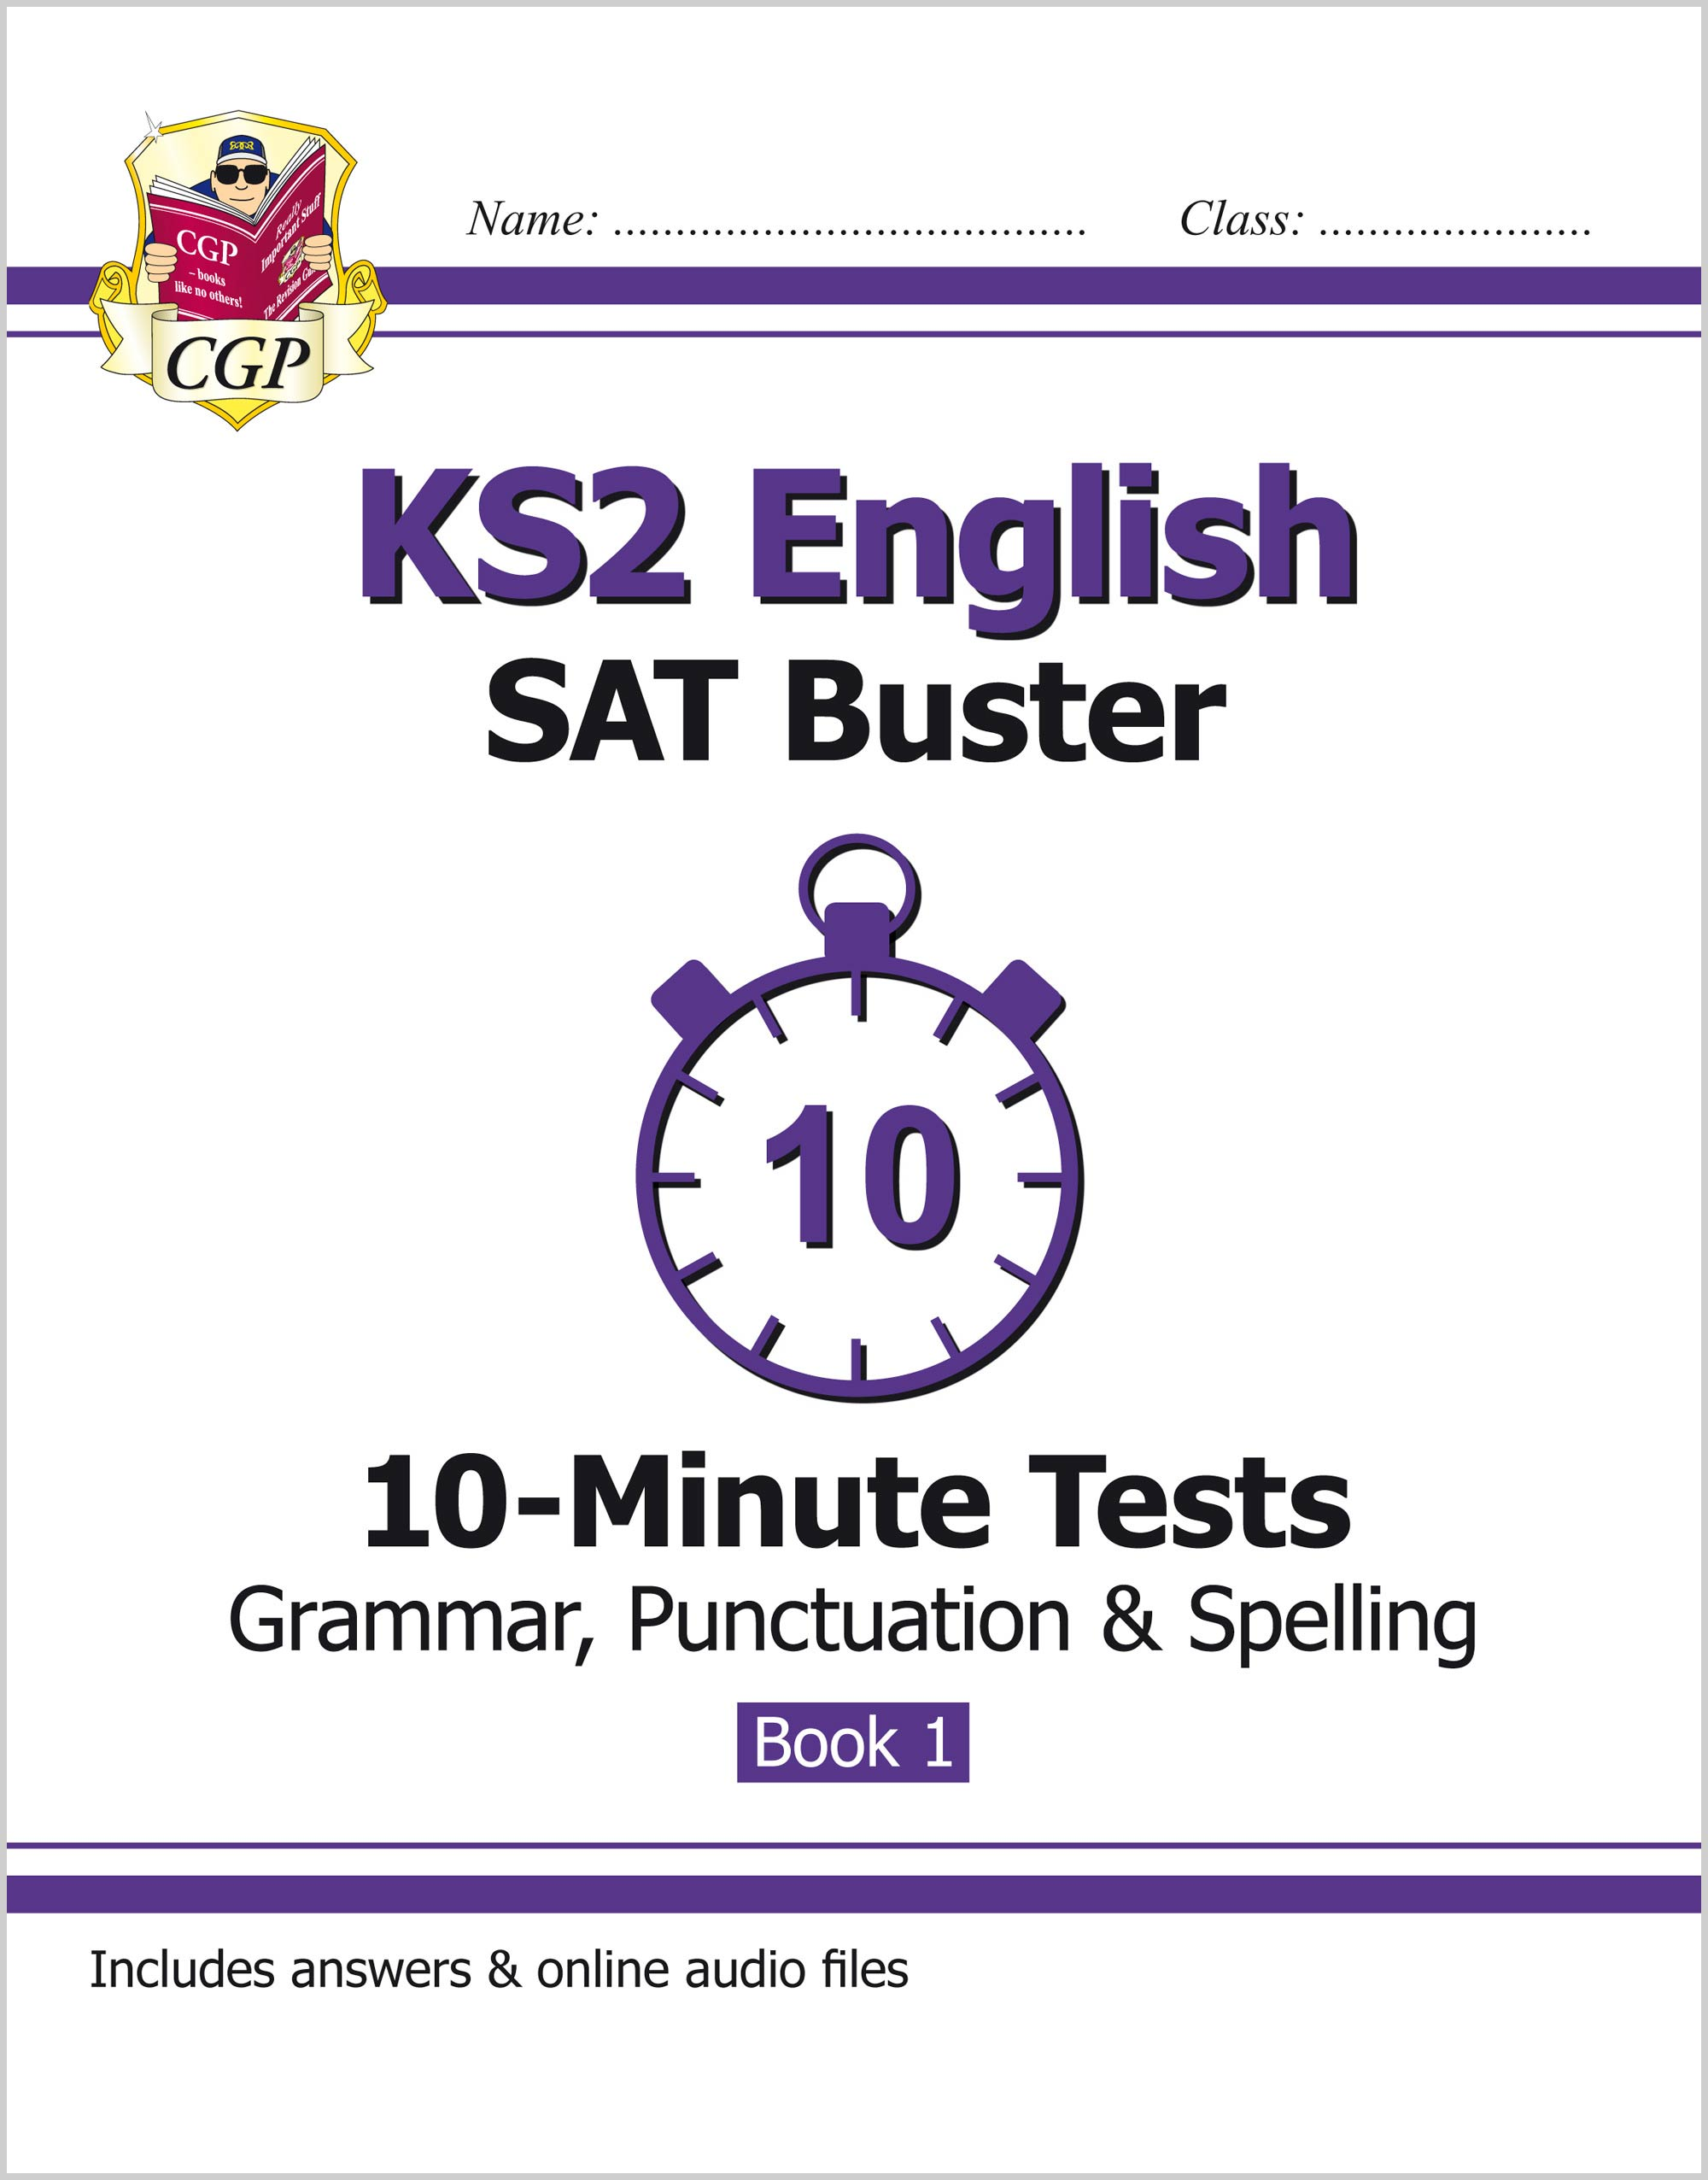 EXPG22 - KS2 English SAT Buster 10-Minute Tests: Grammar, Punctuation & Spelling Book 1 (for the 201